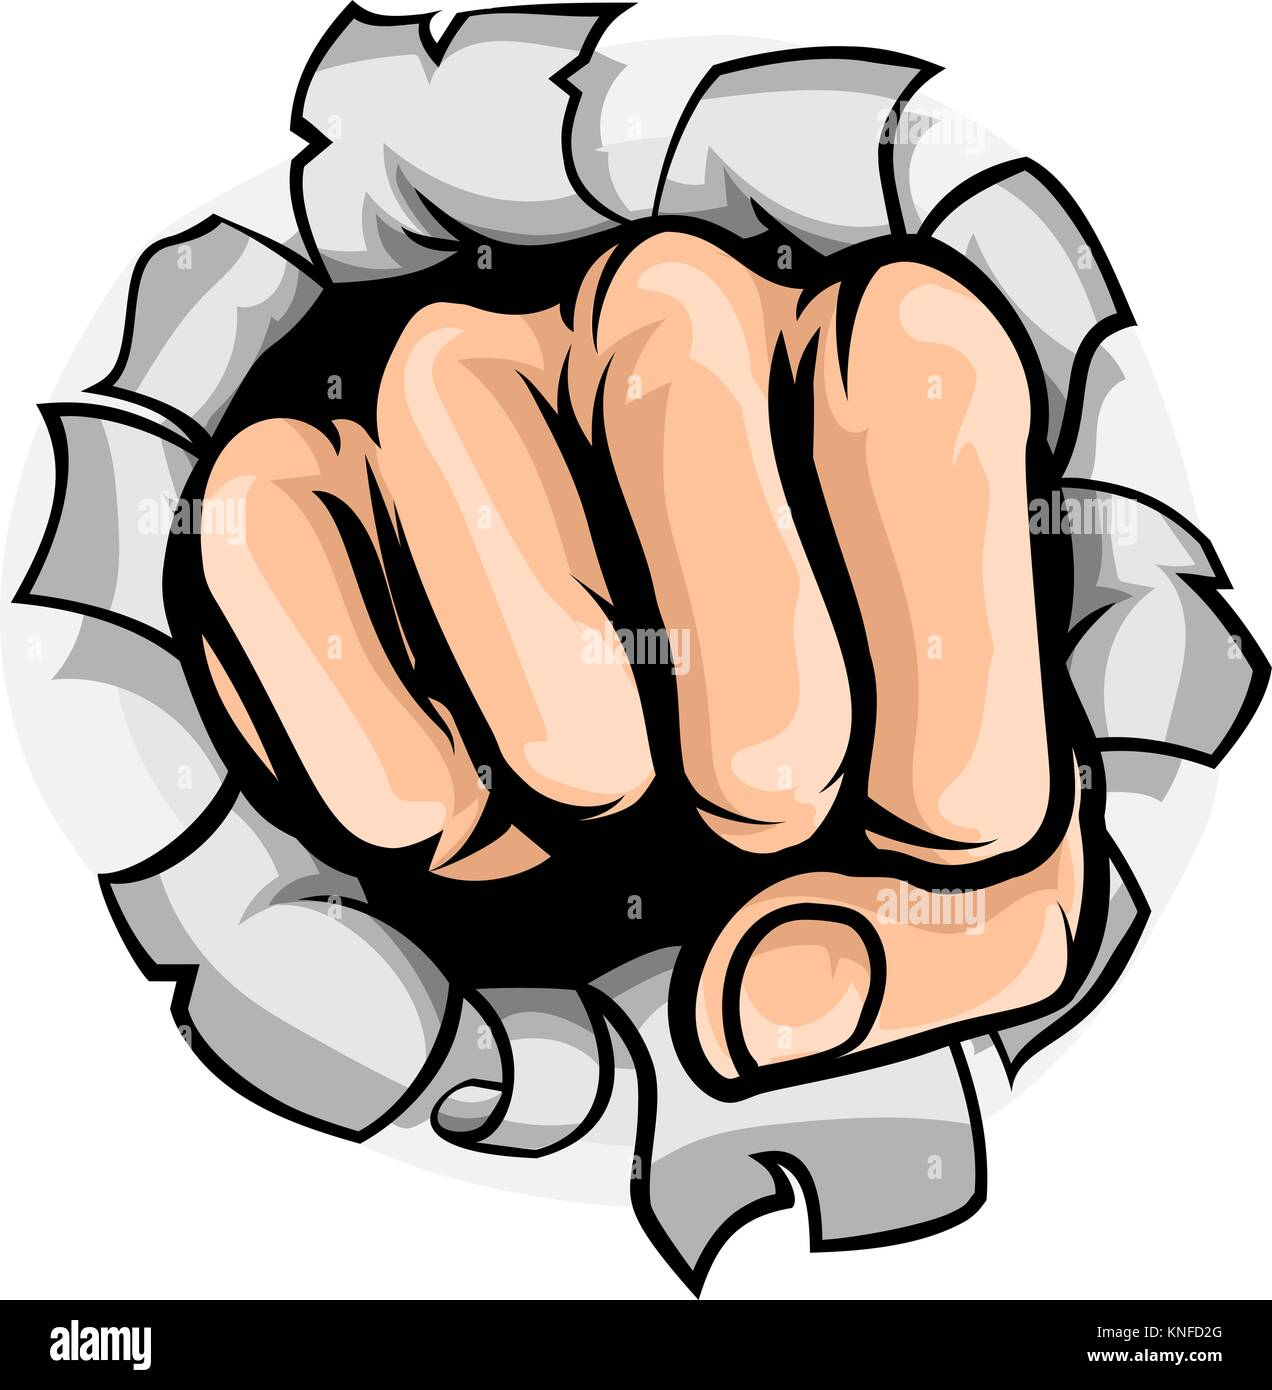 Fist Punching Hole - Stock Vector